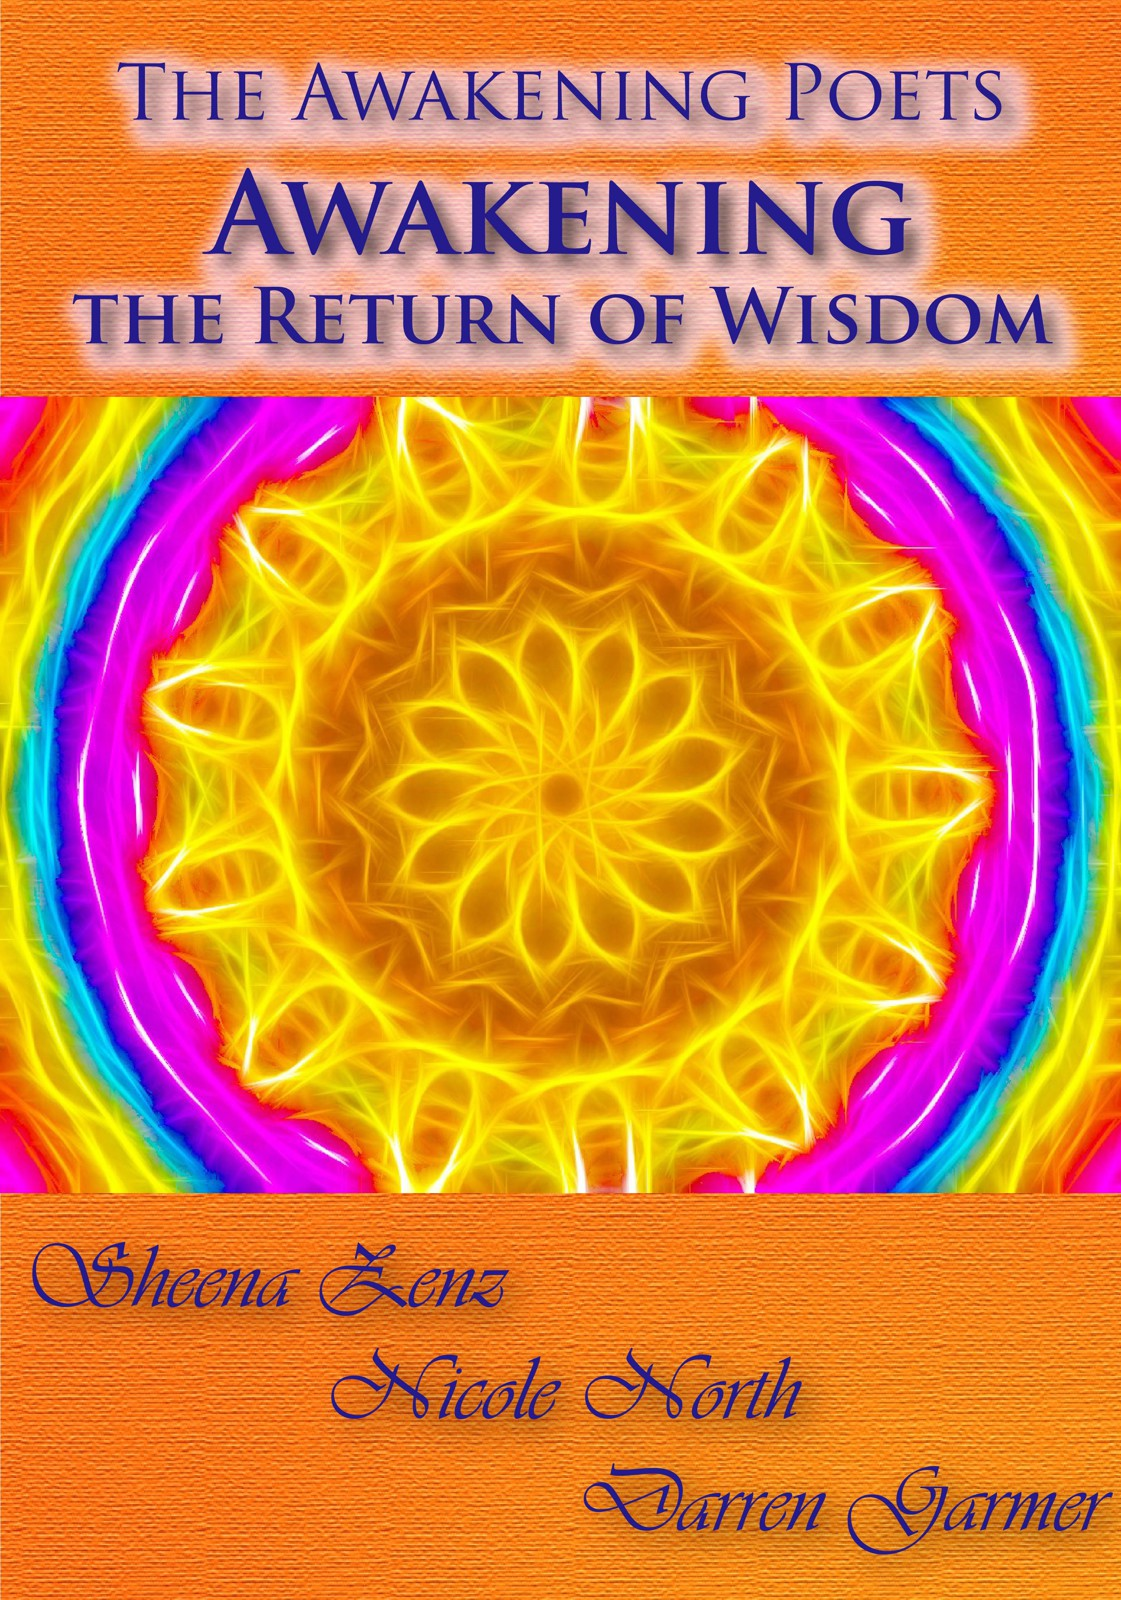 Awakening the Return of Wisdom